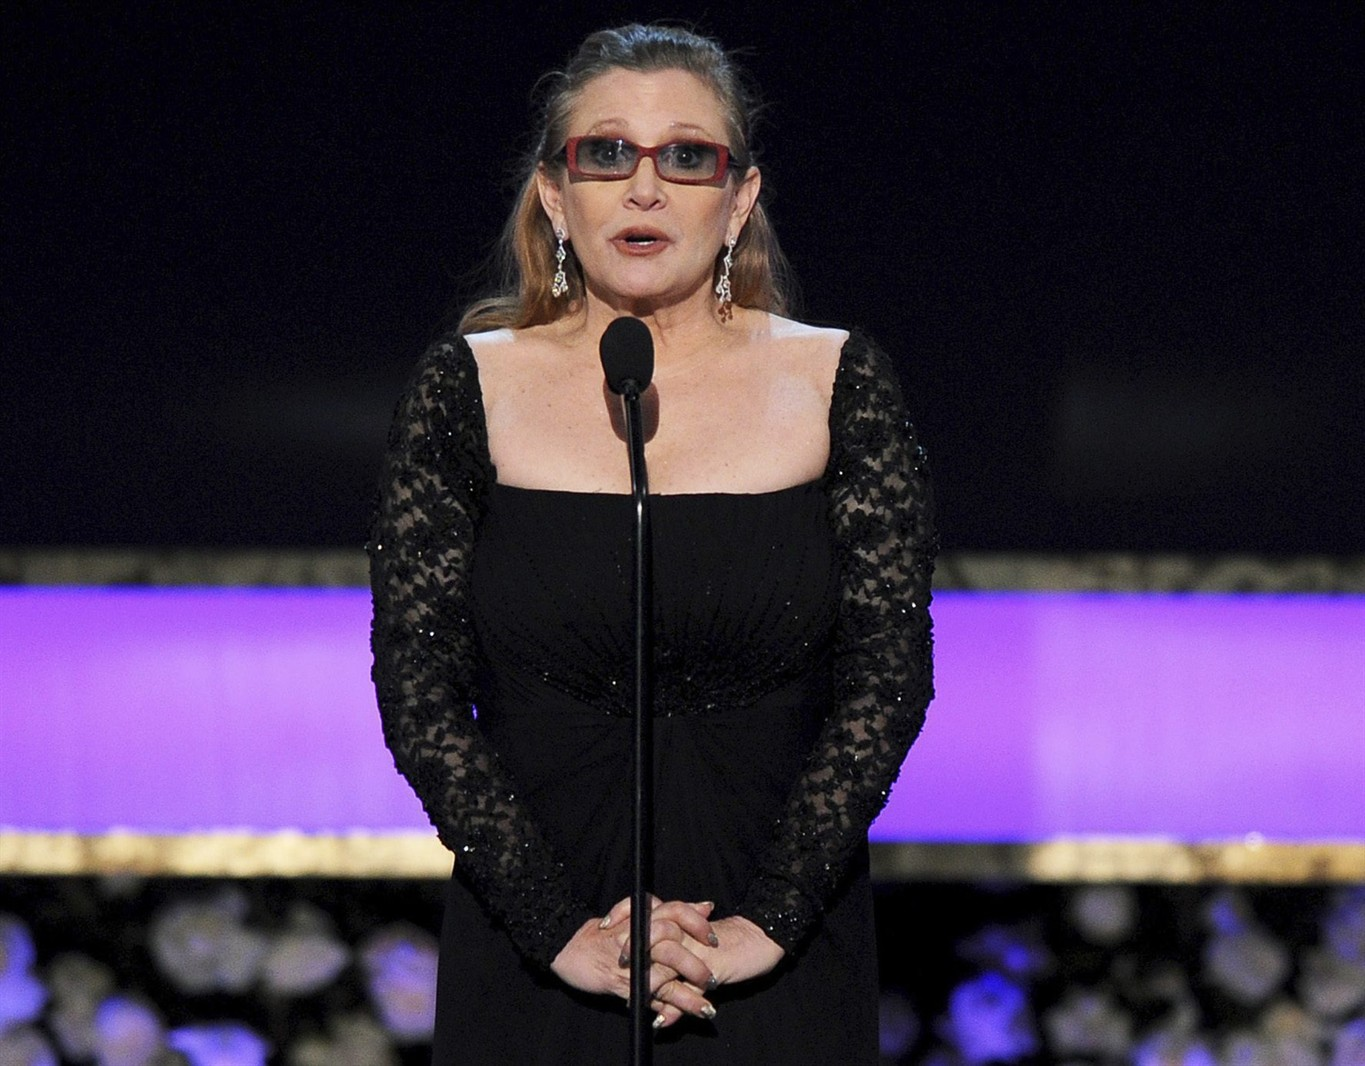 'Star Wars' actress Carrie Fisher suffers heart attack on plane